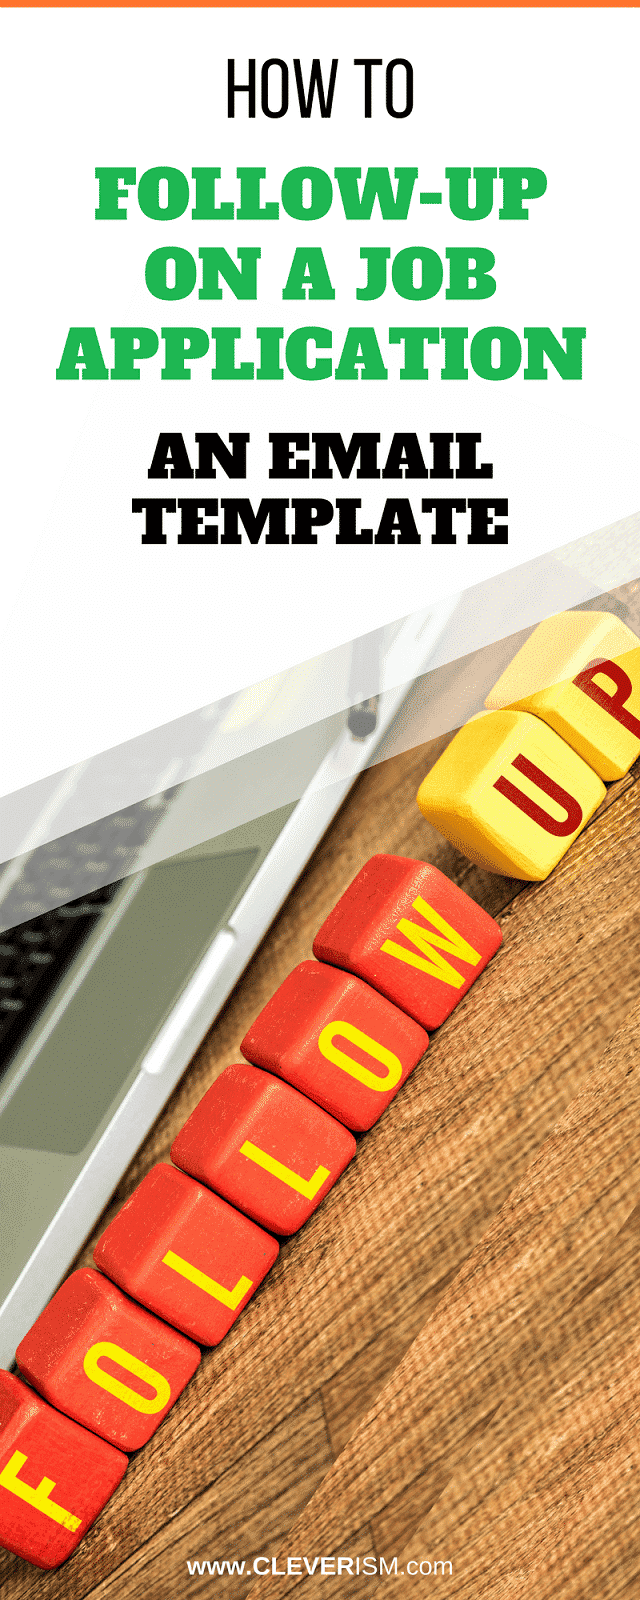 how to follow up on a job application an email template